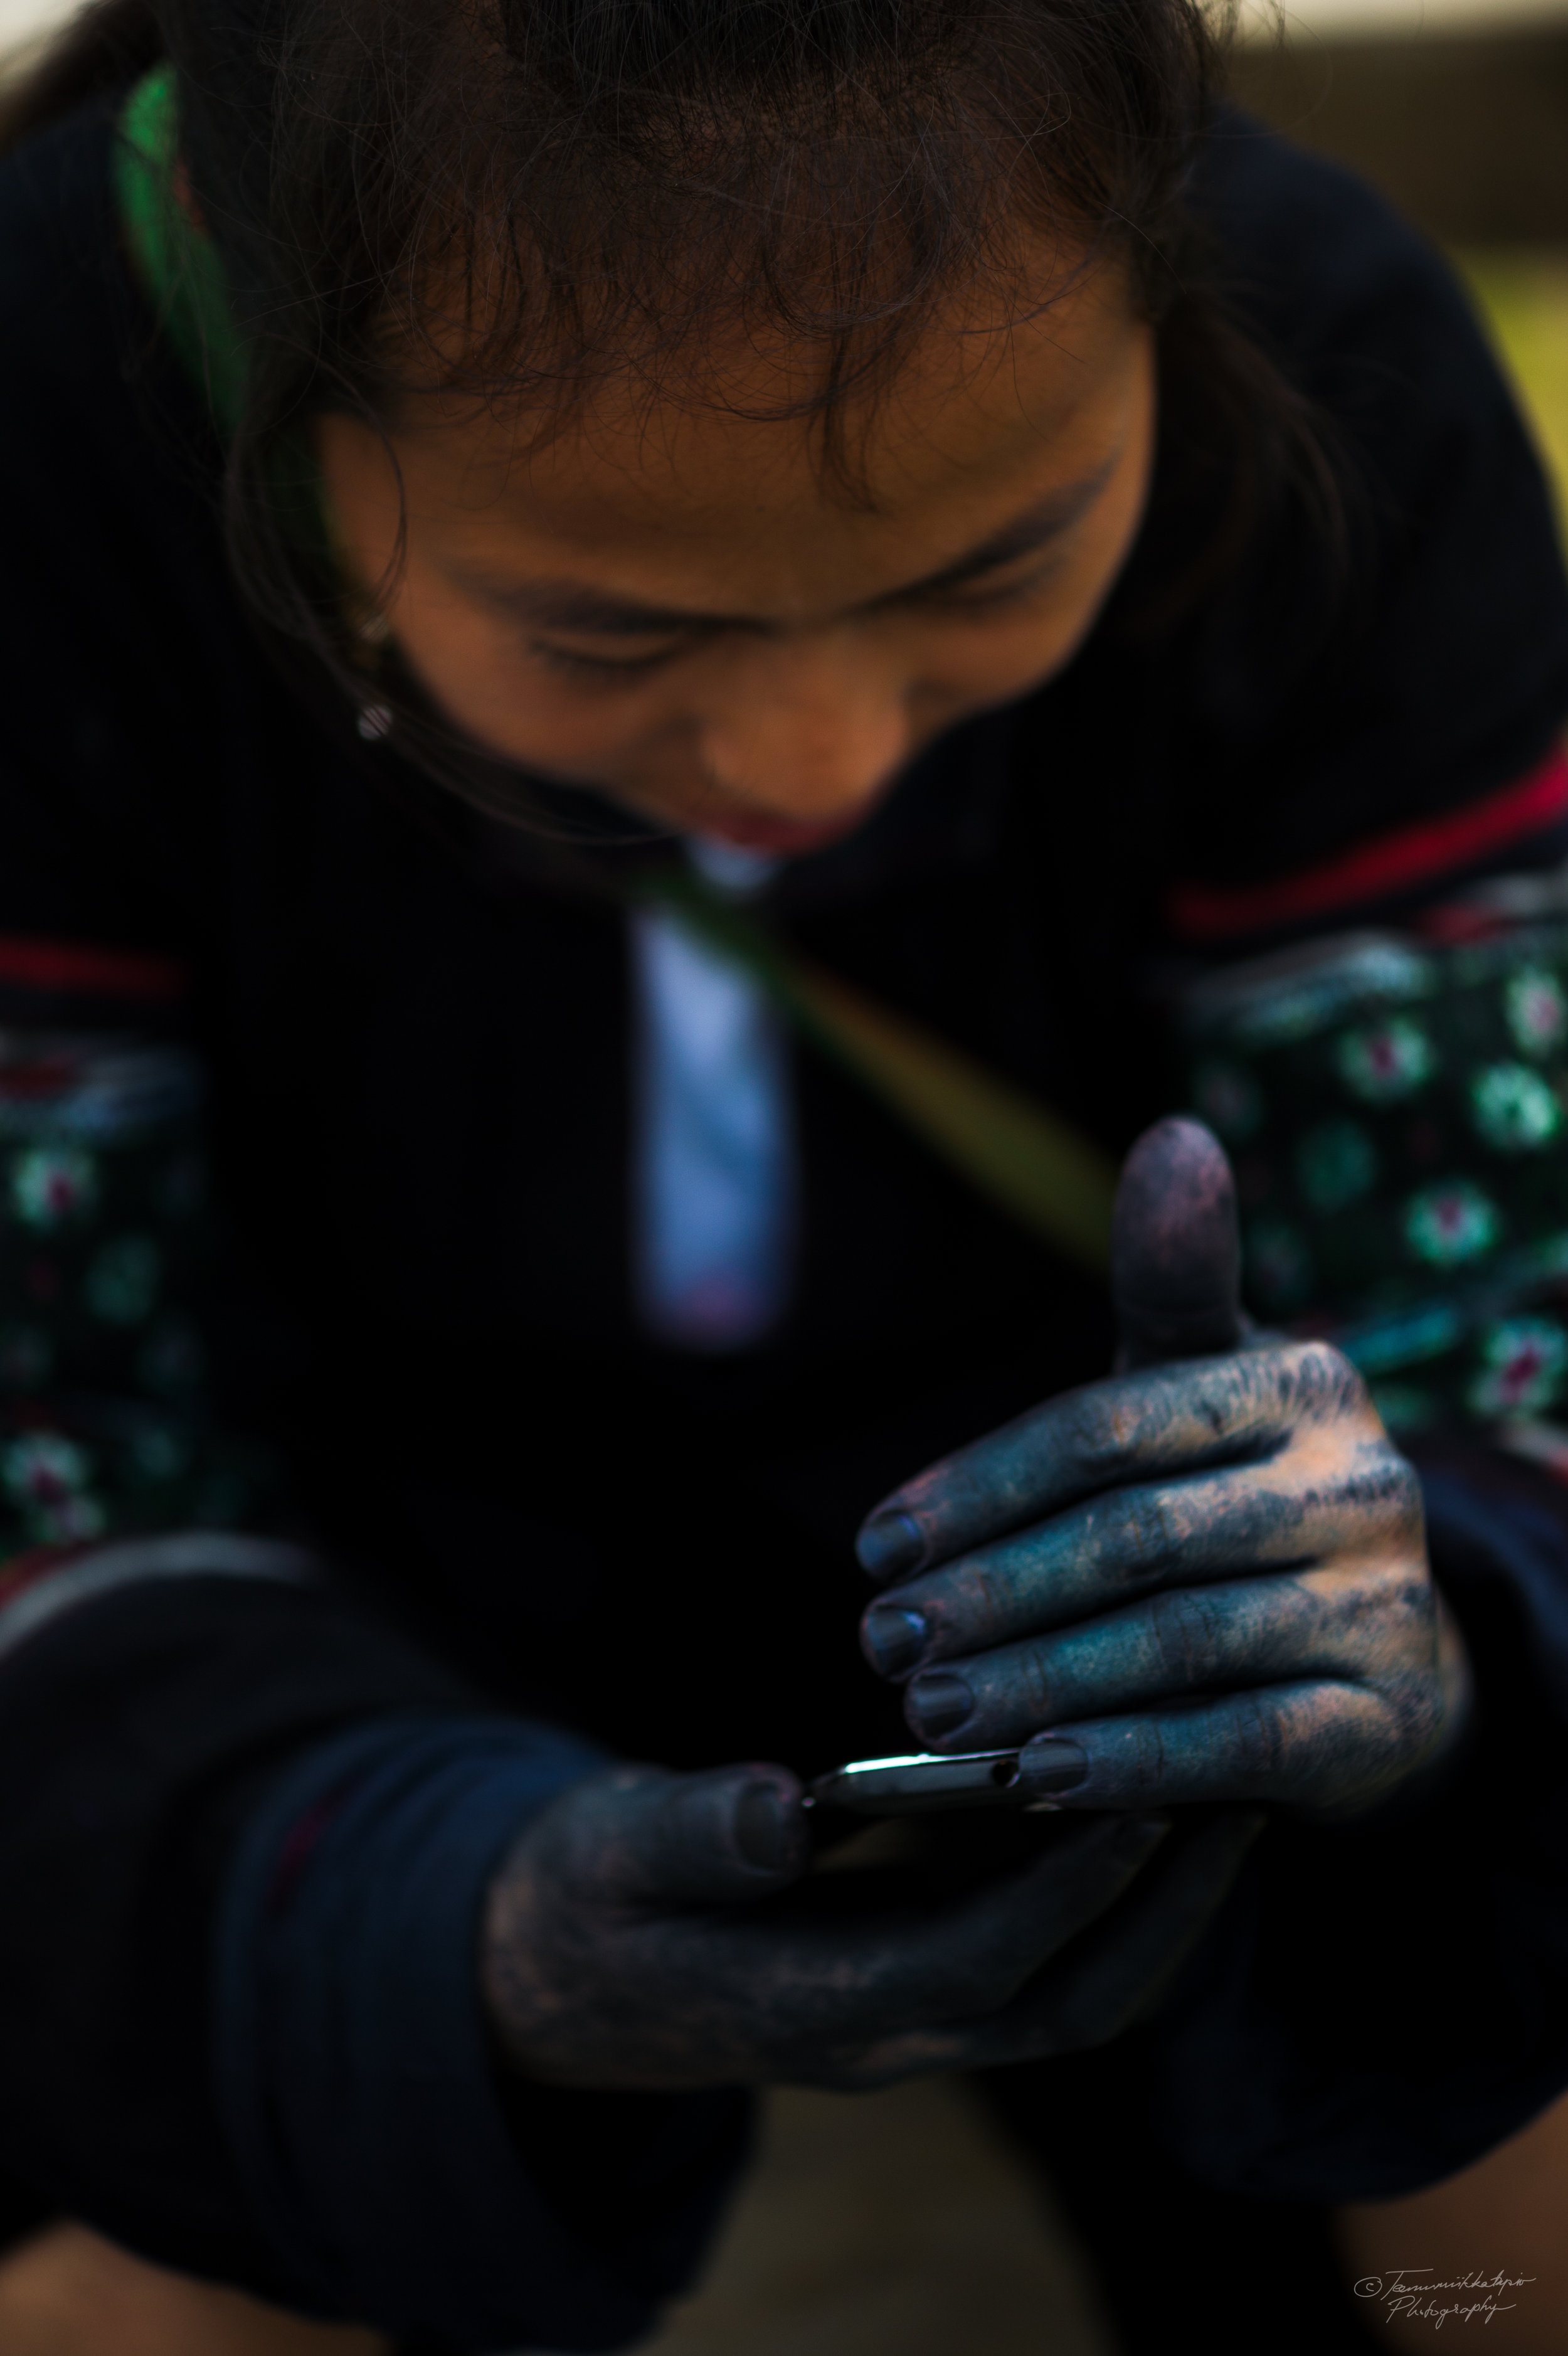 A young H´mong woman checks her phone in the market. H´mongs traditionally dye their fabrics with natural colors they get from indigo plants. Dyeing fabrics makes their hands blue.